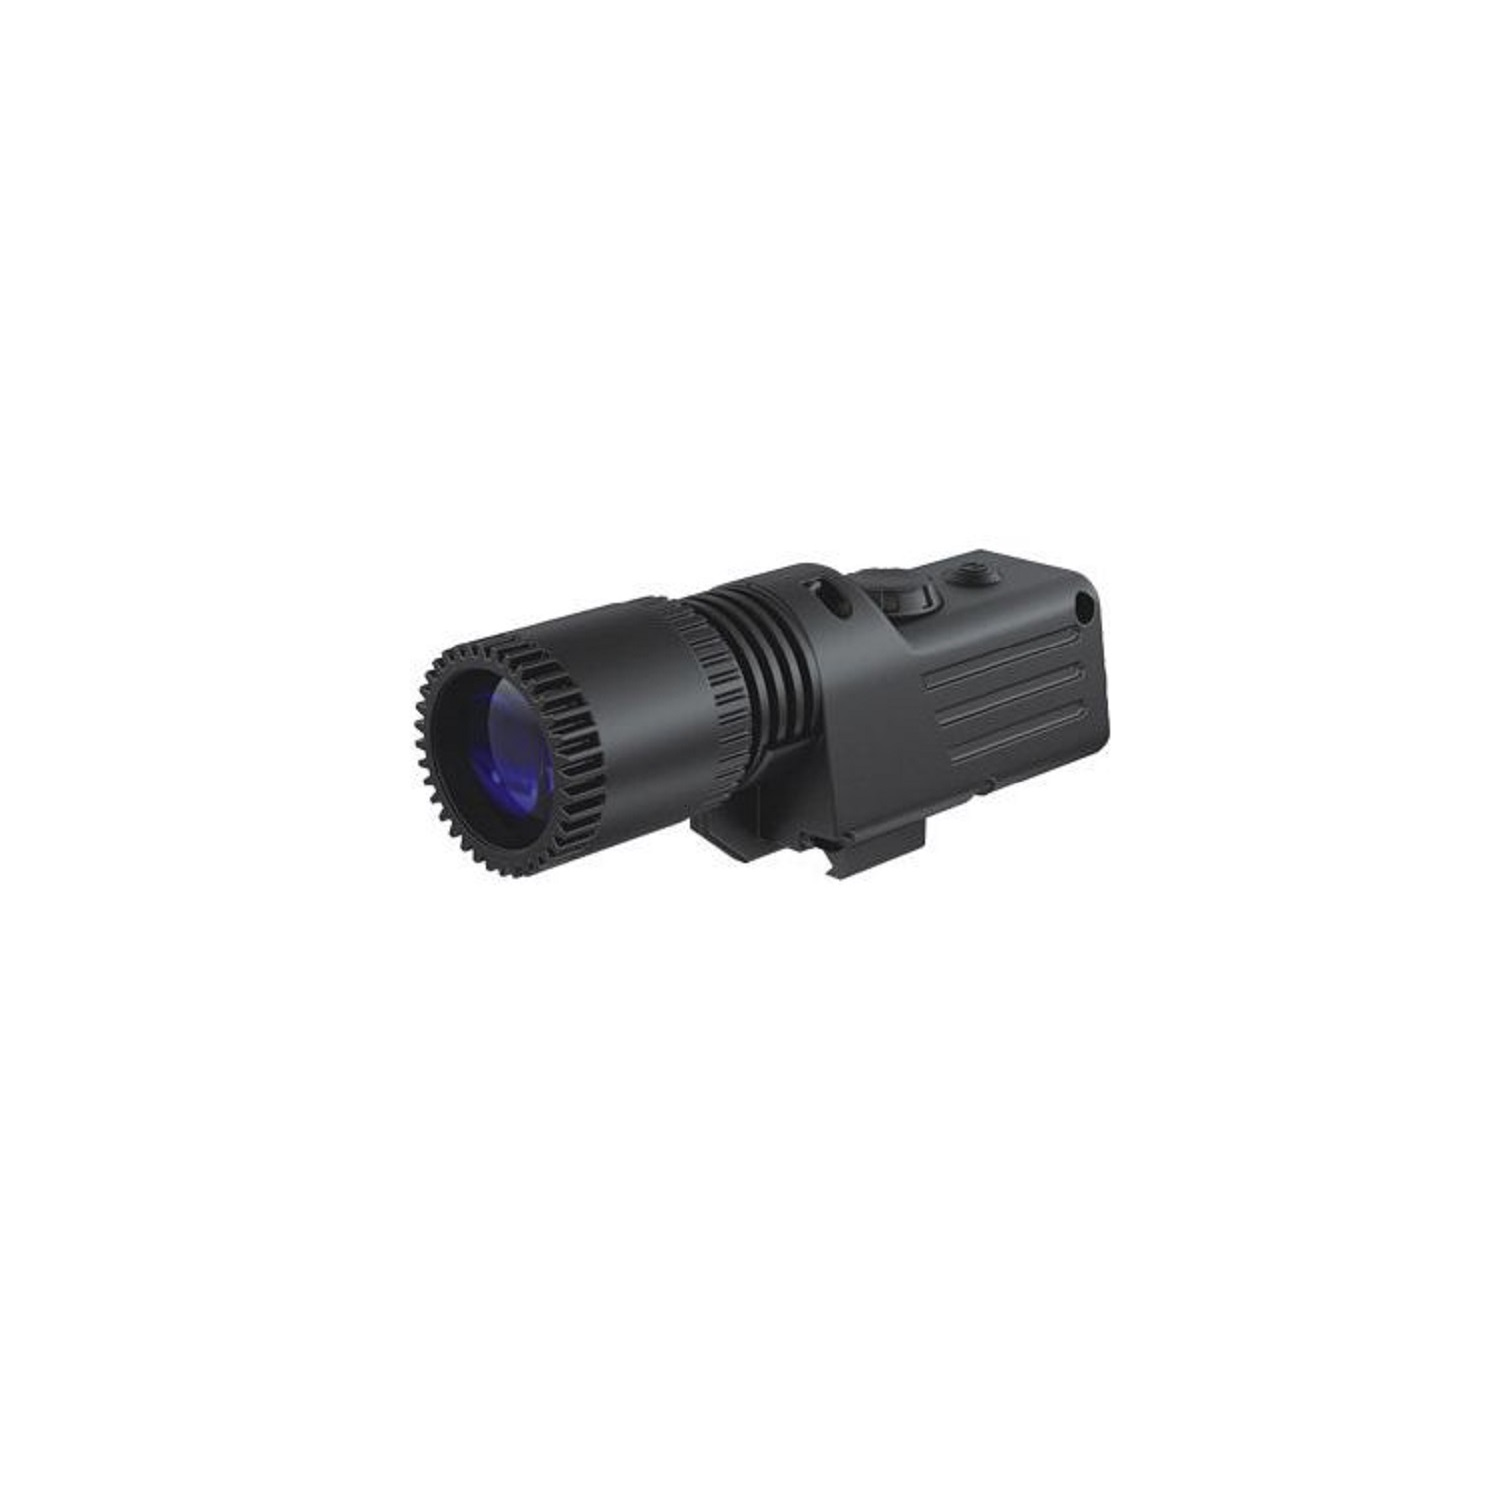 Pulsar 940 IR Flashlight Night Vision Accessory by Pulsar